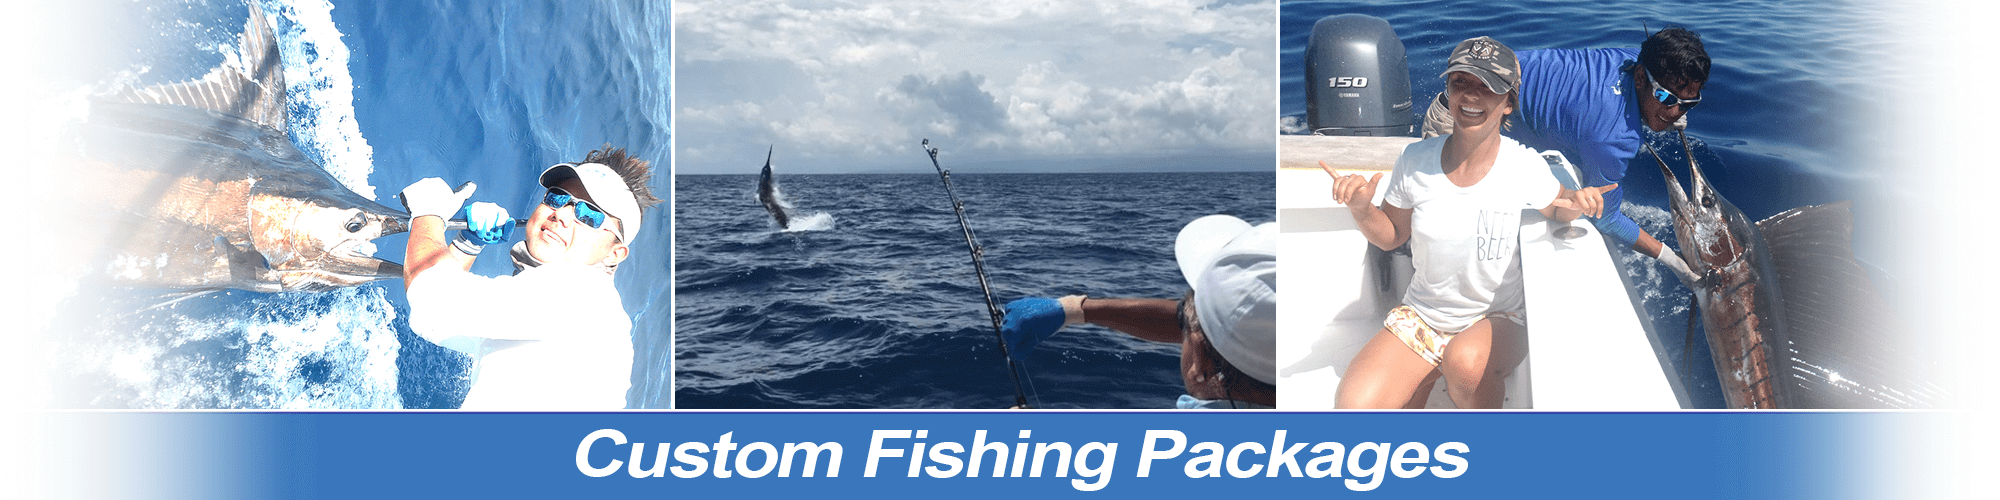 Custom Fishing Packages